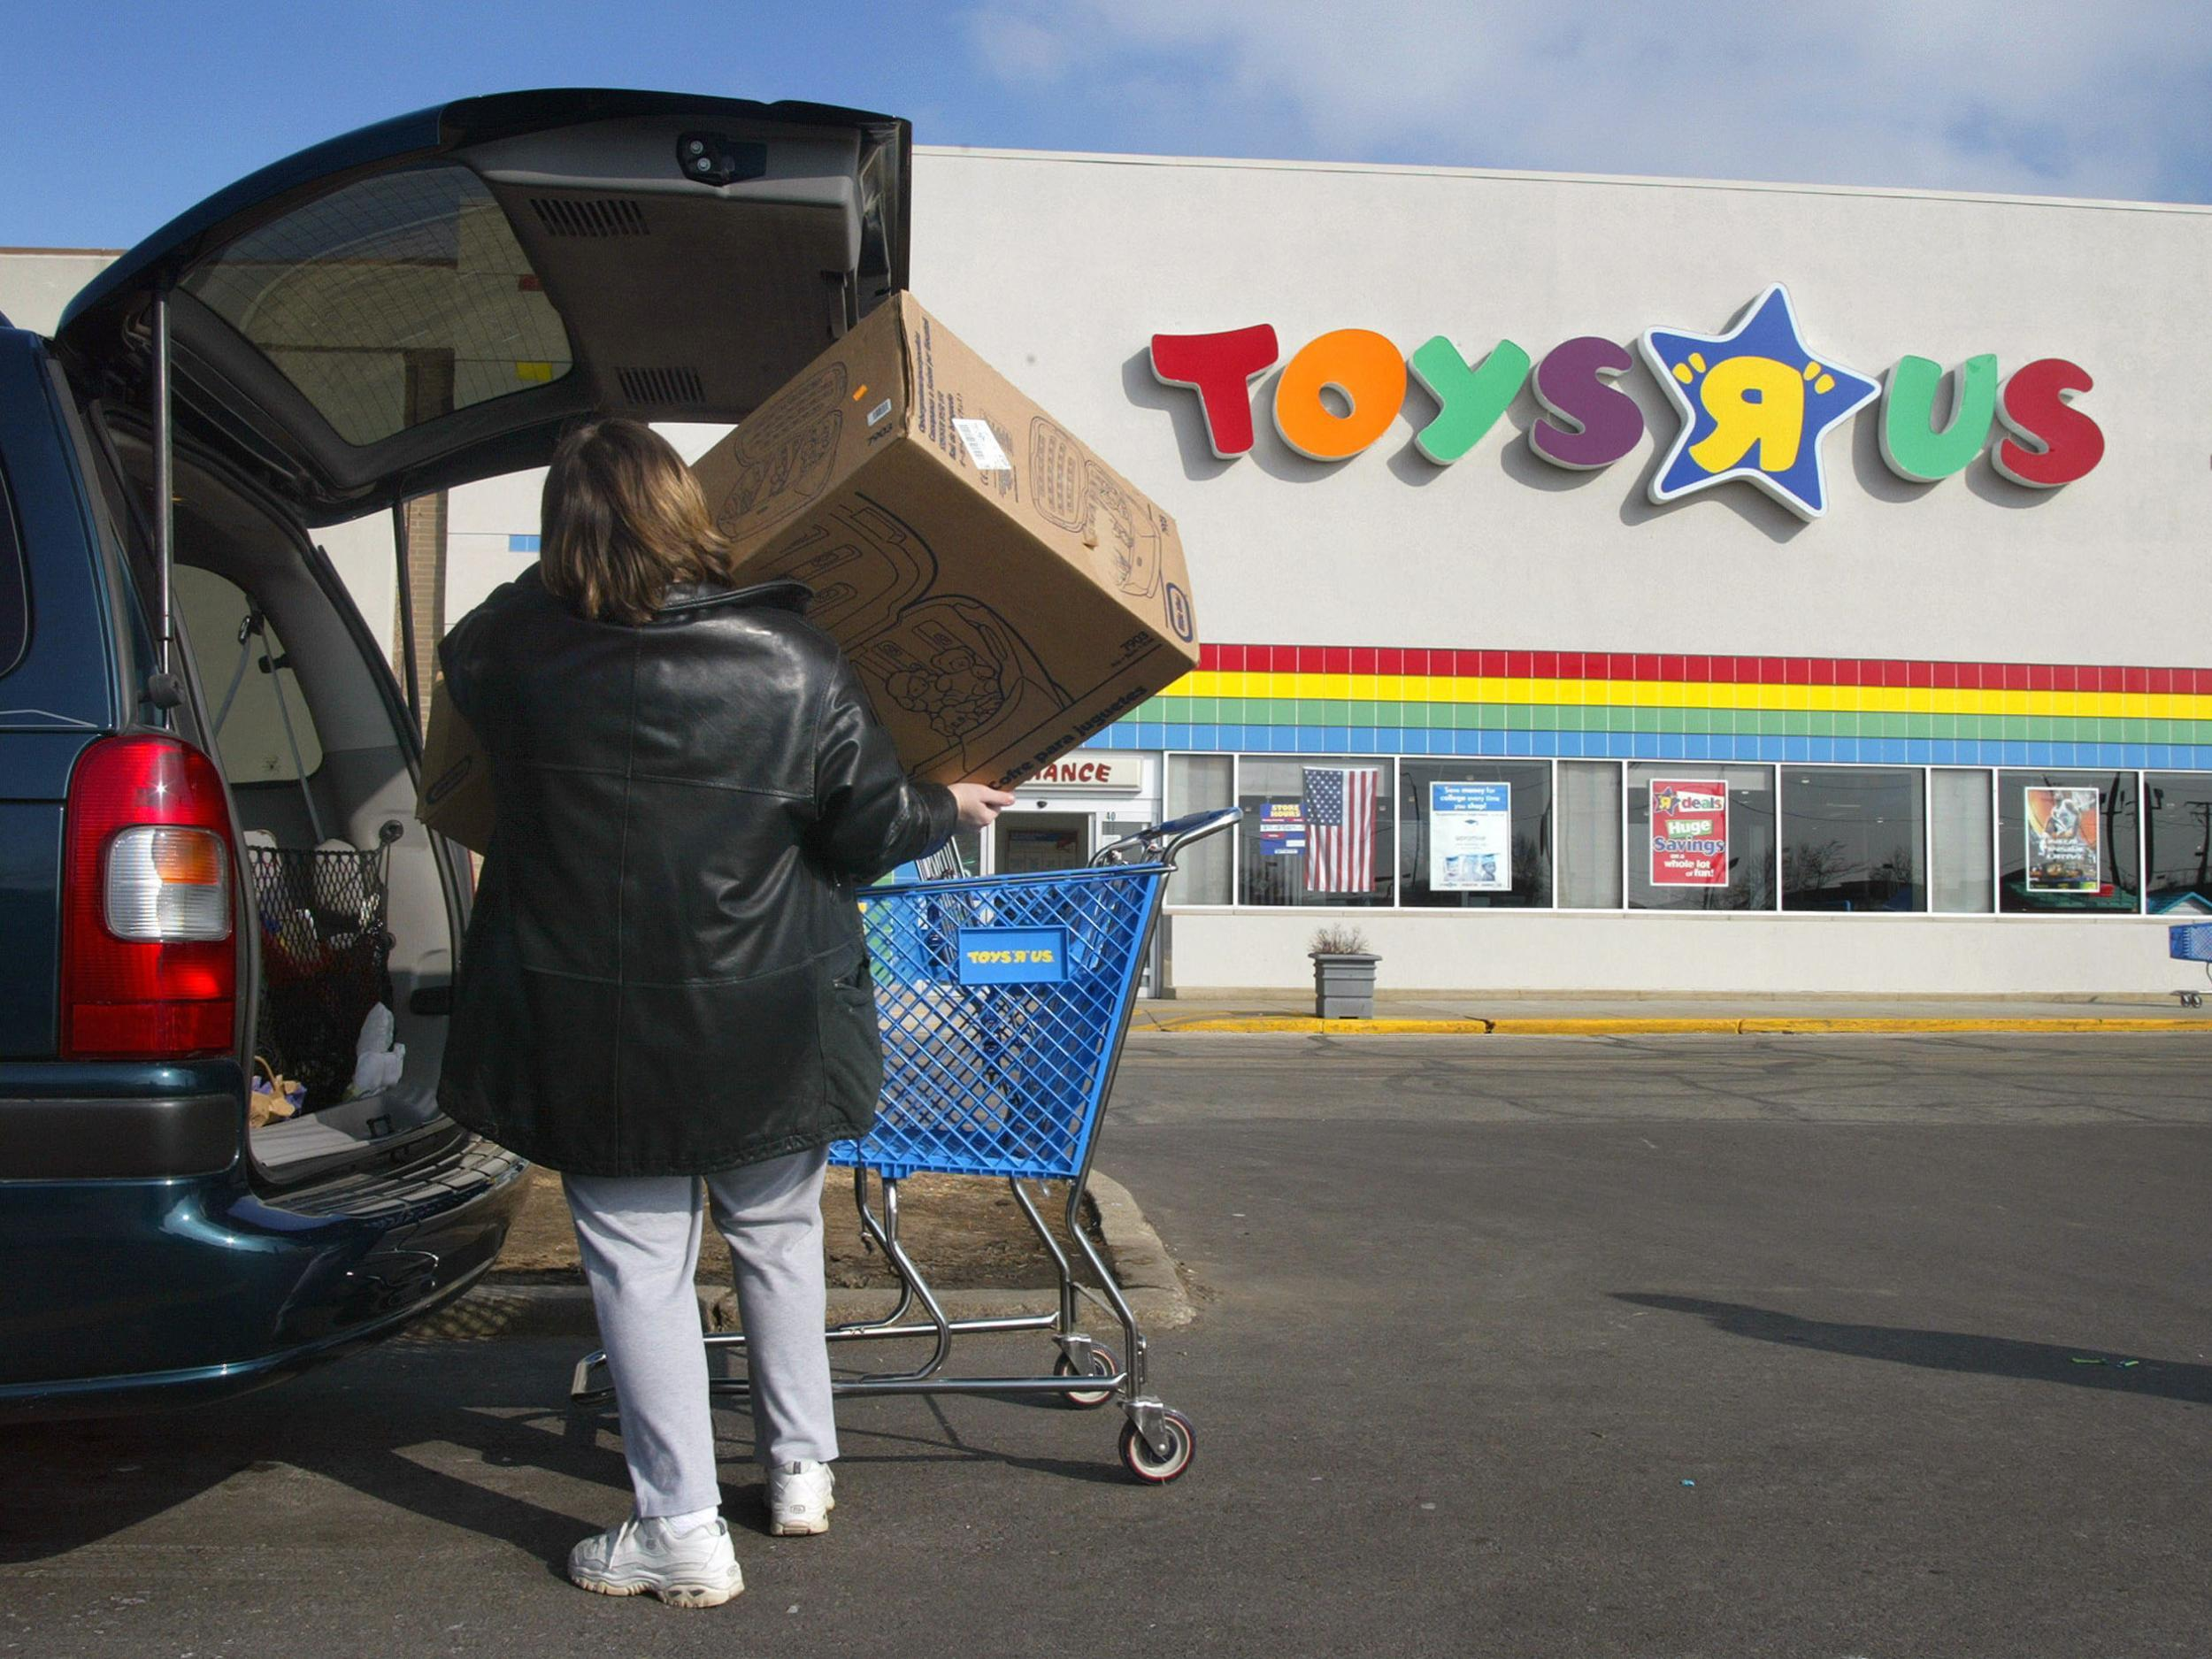 Toys R Us quiet hour launched to help children with autism | The ...